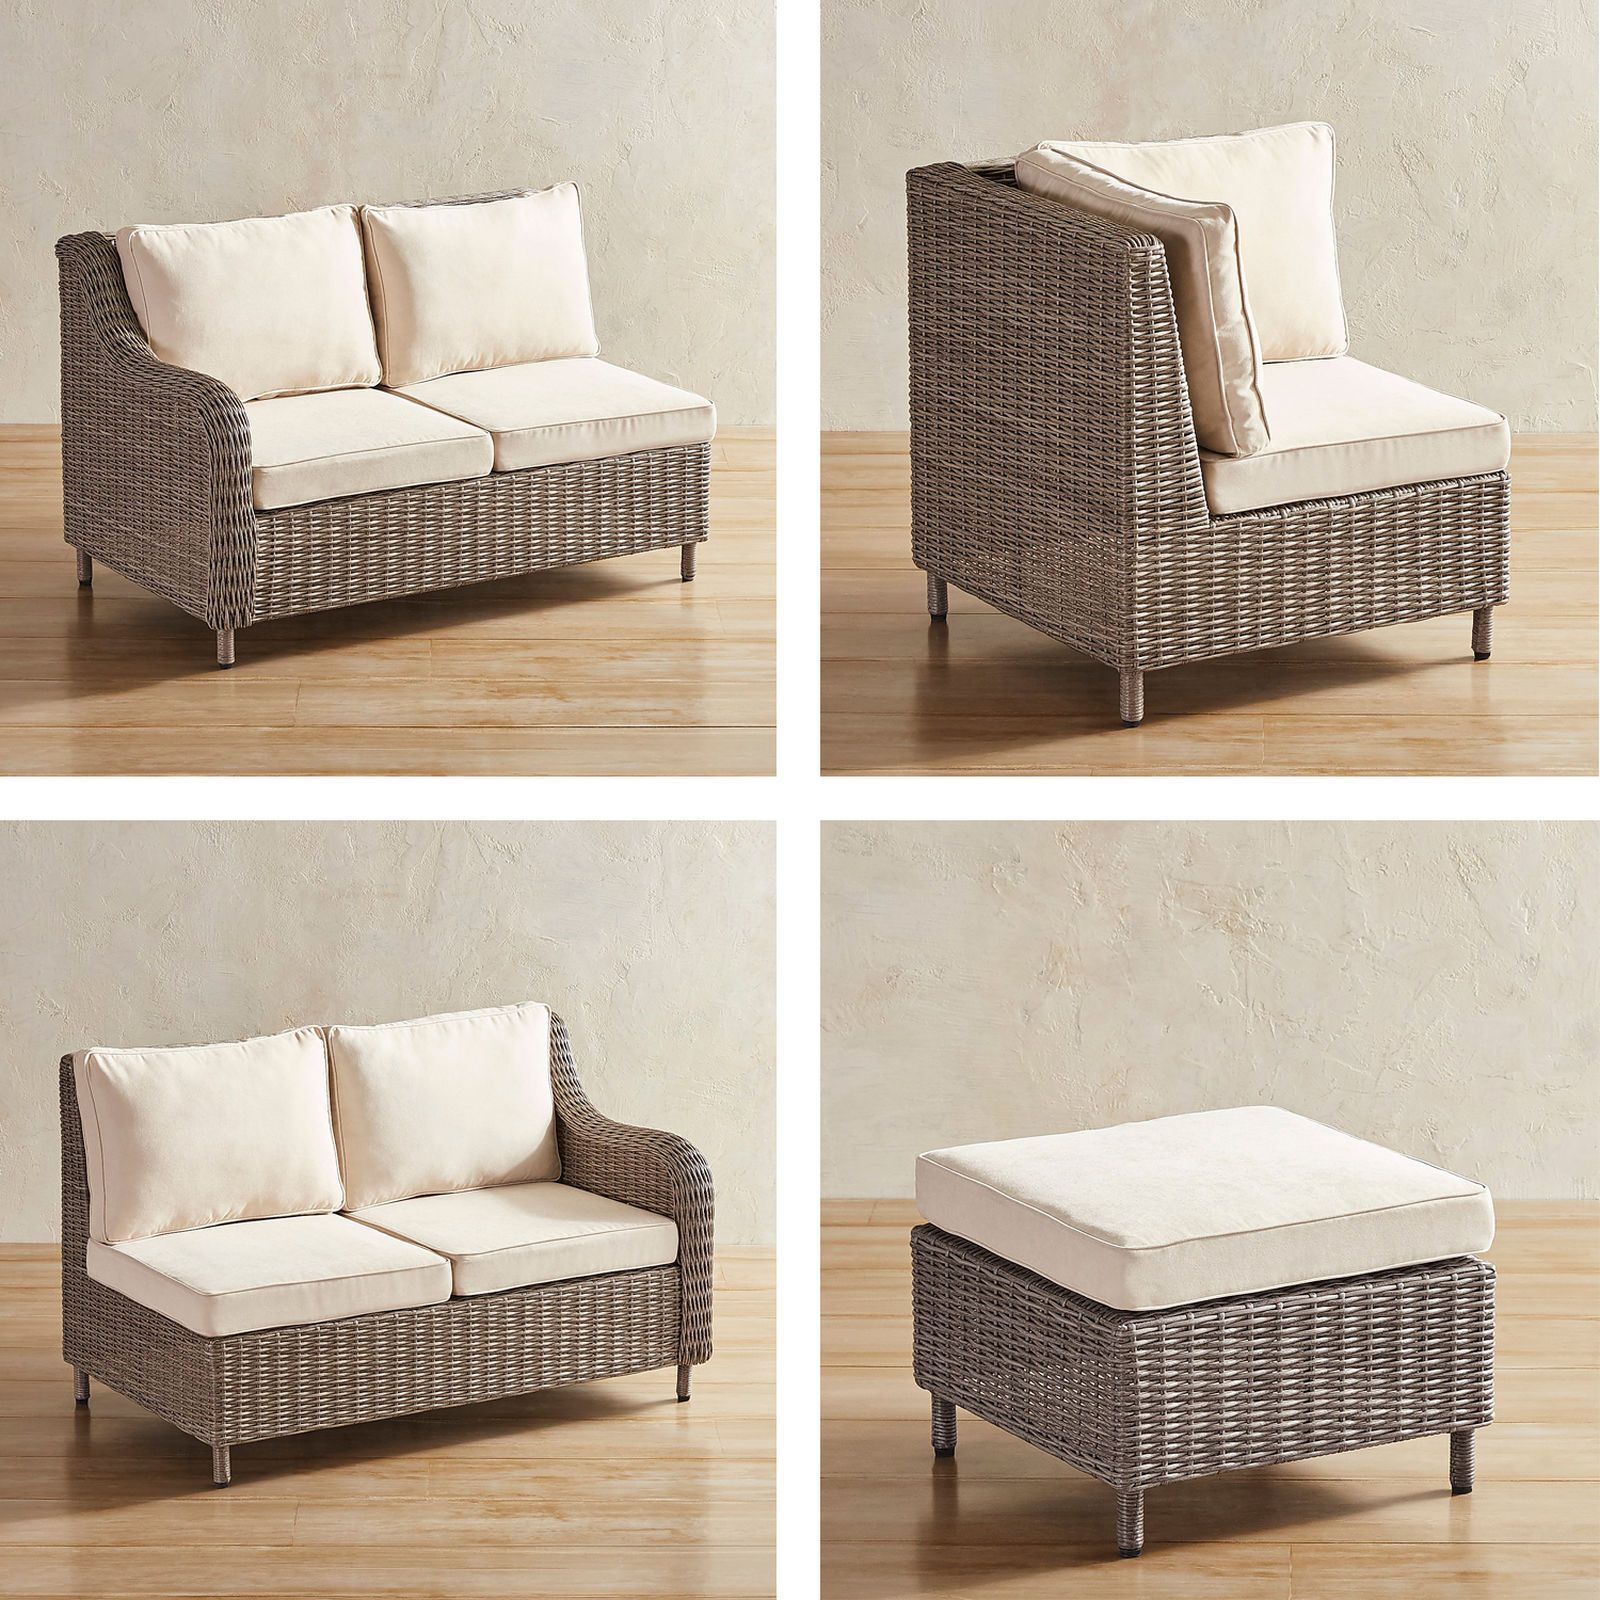 Crestview Gray Build Your Own Sectional - Pier 1 Imports